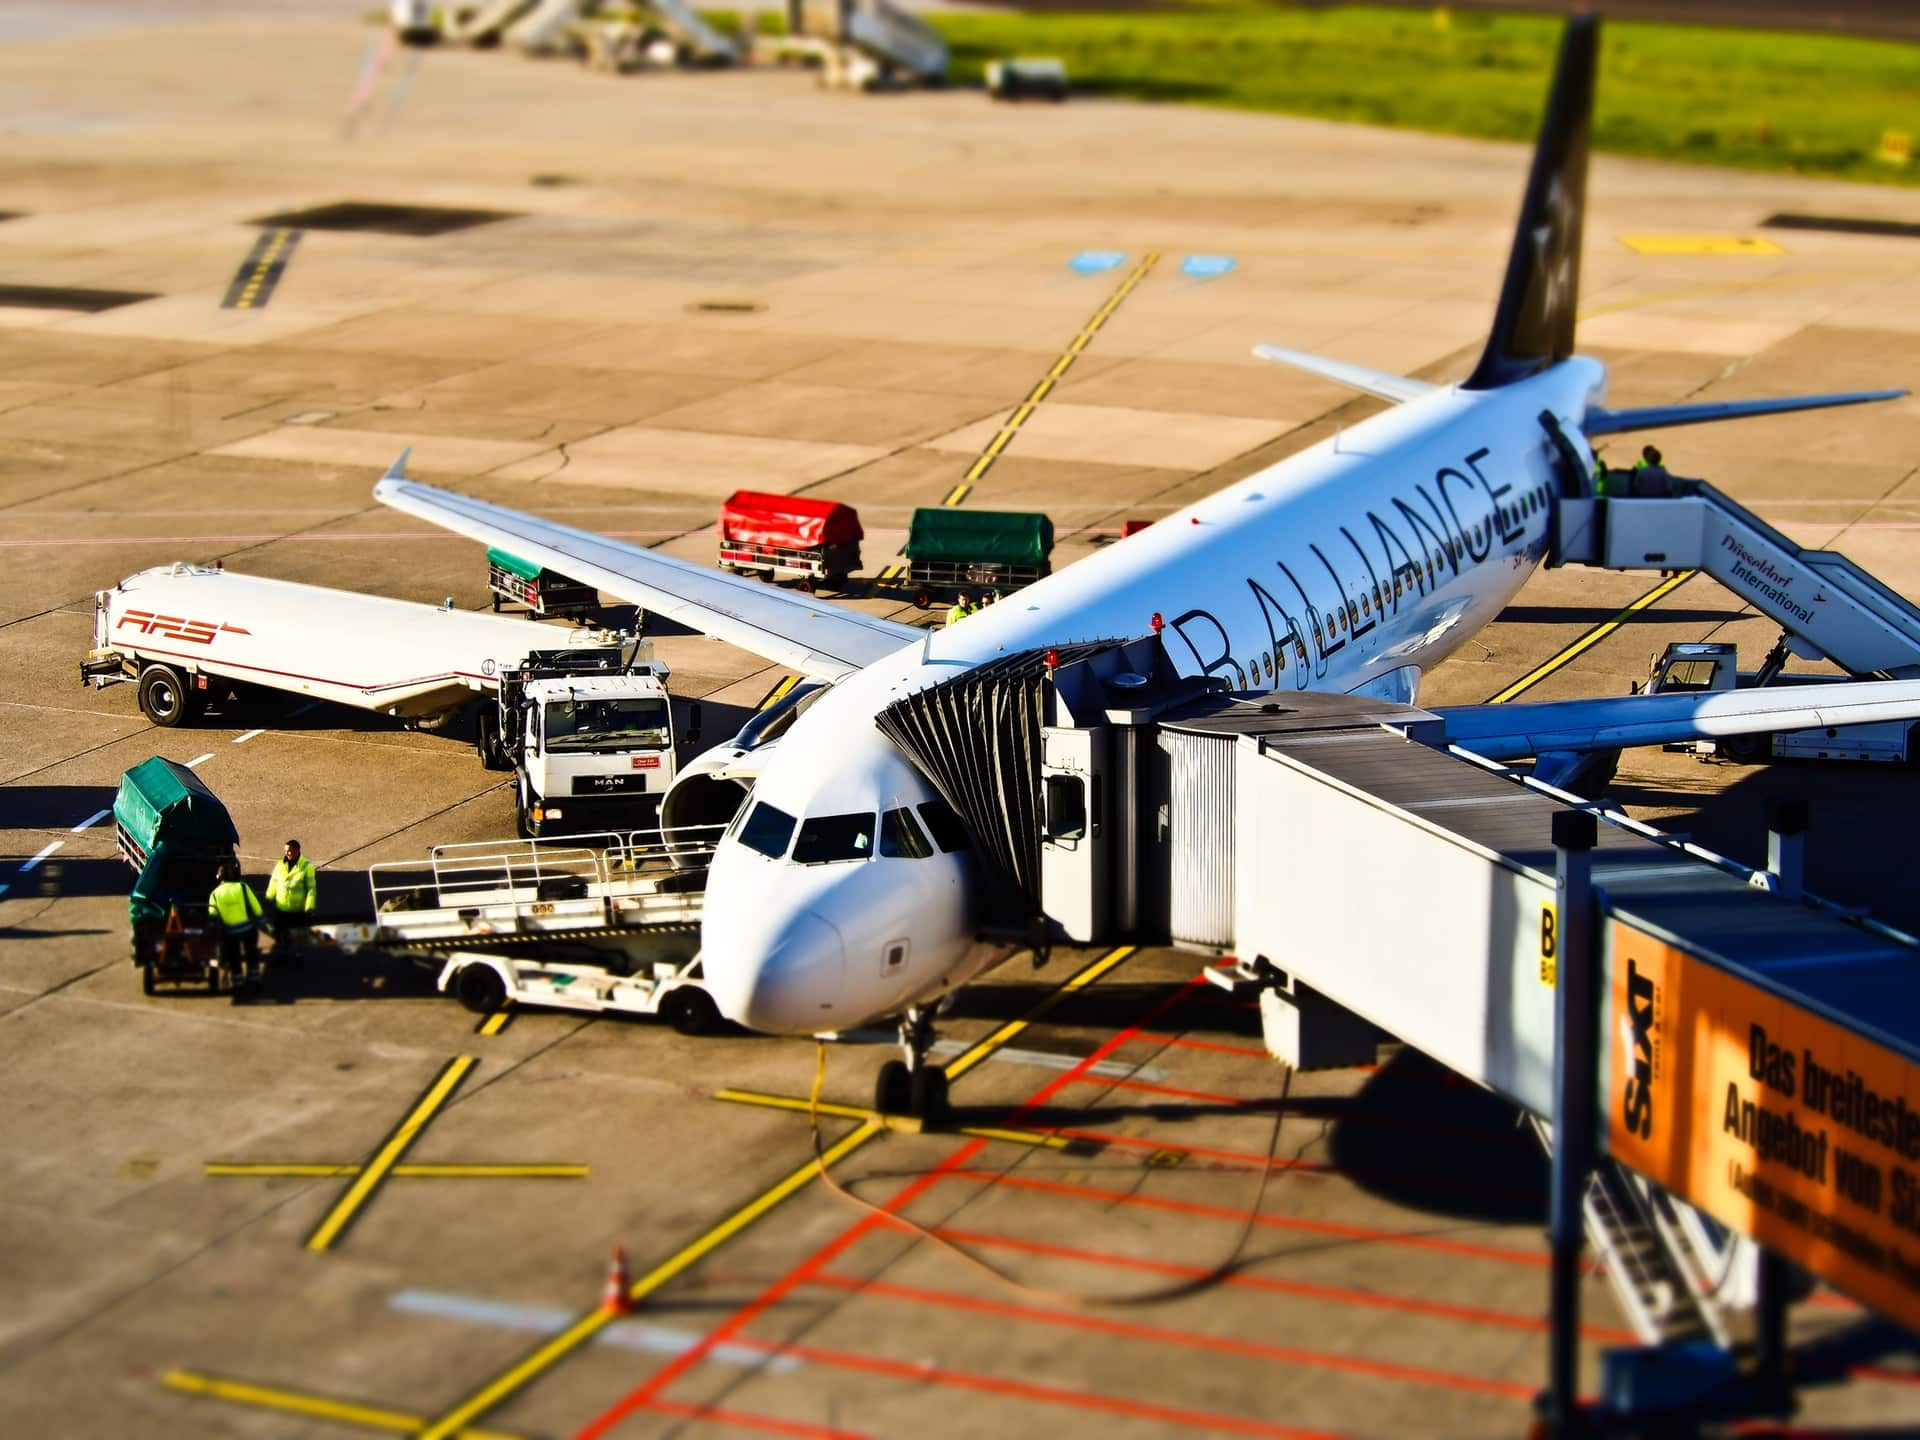 airport-aircraft-departure-travel